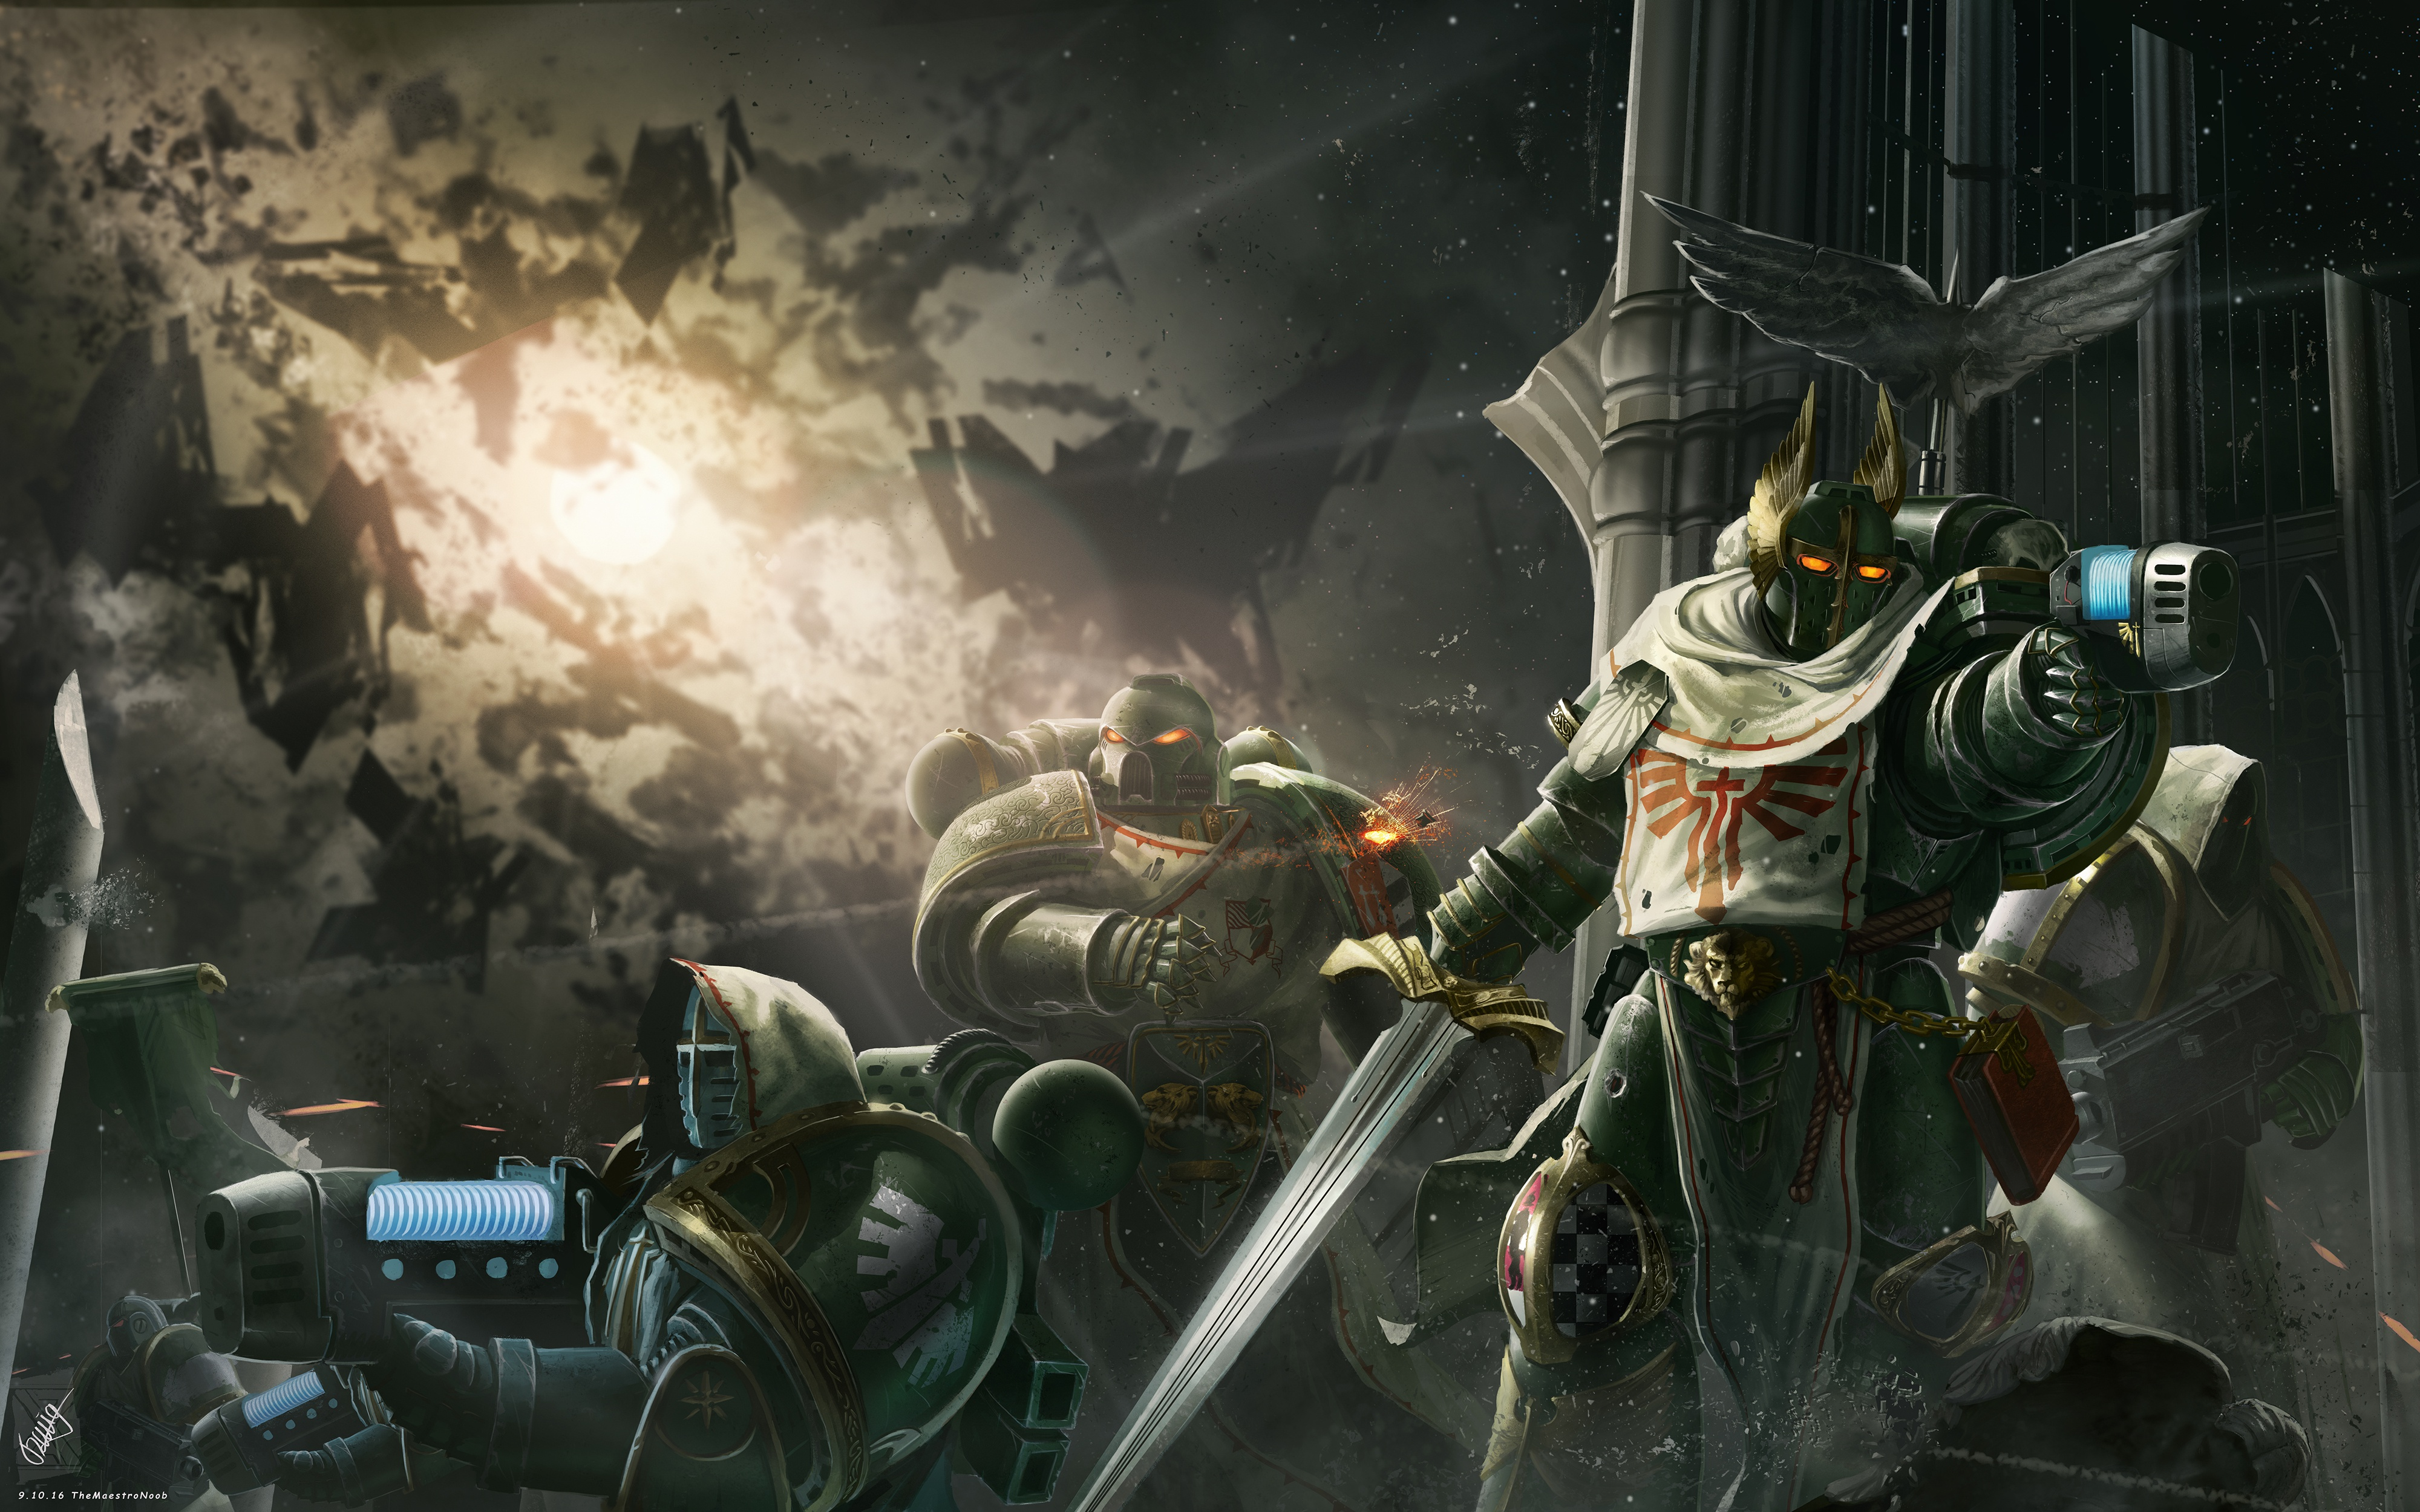 warhammer 40k wallpapers pictures images